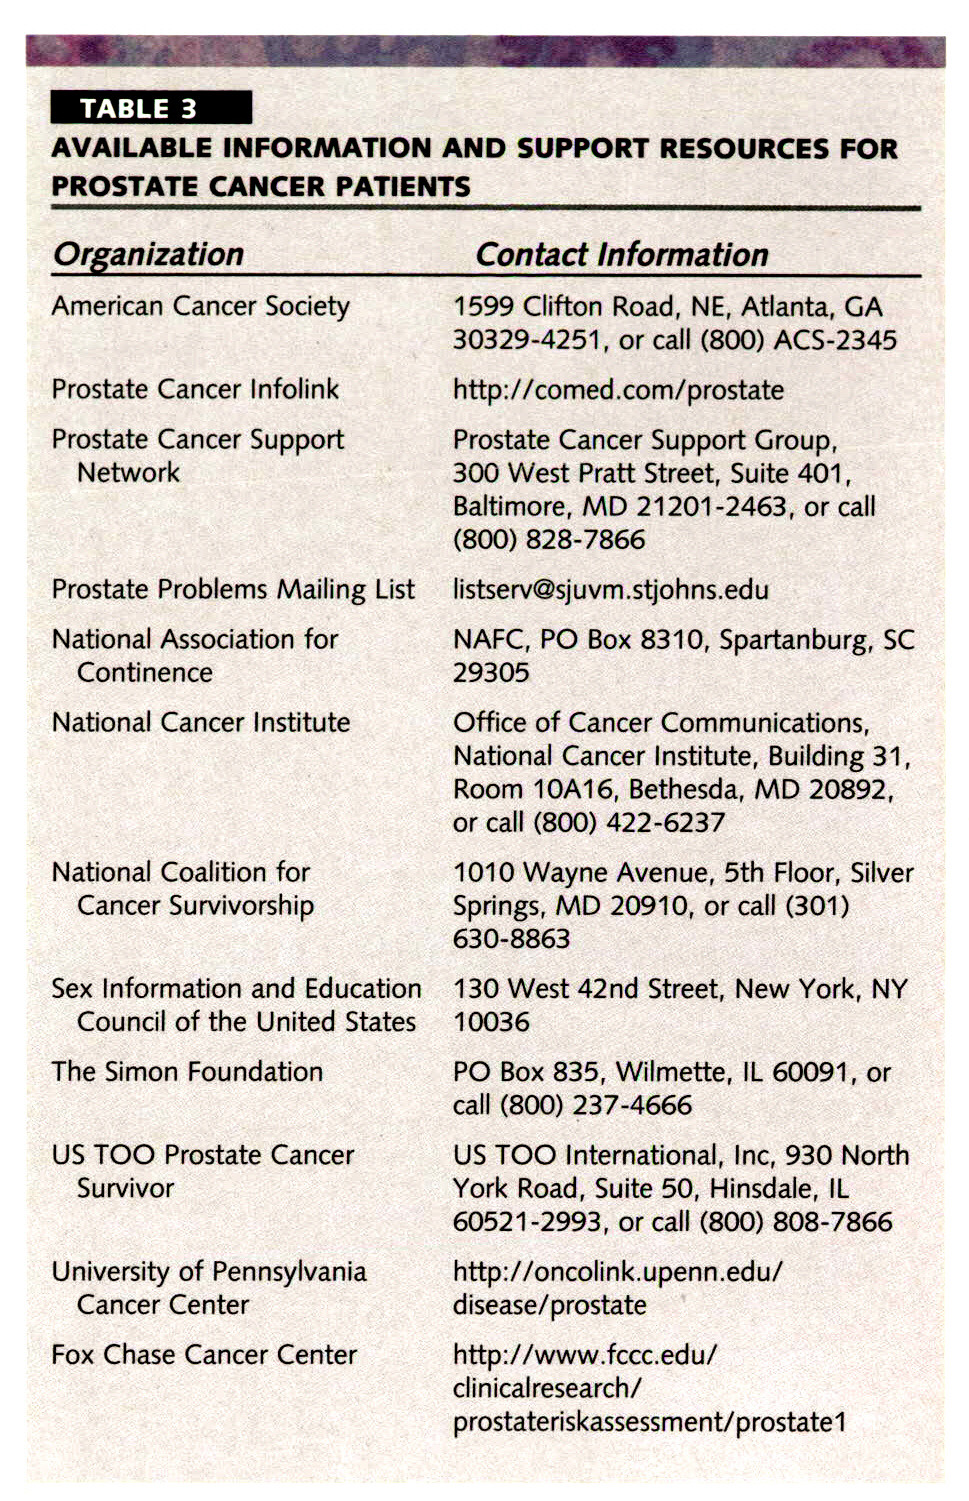 TABLE 3AVAILABLE INFORMATION AND SUPPORT RESOURCES FOR PROSTATE CANCER PATIENTS